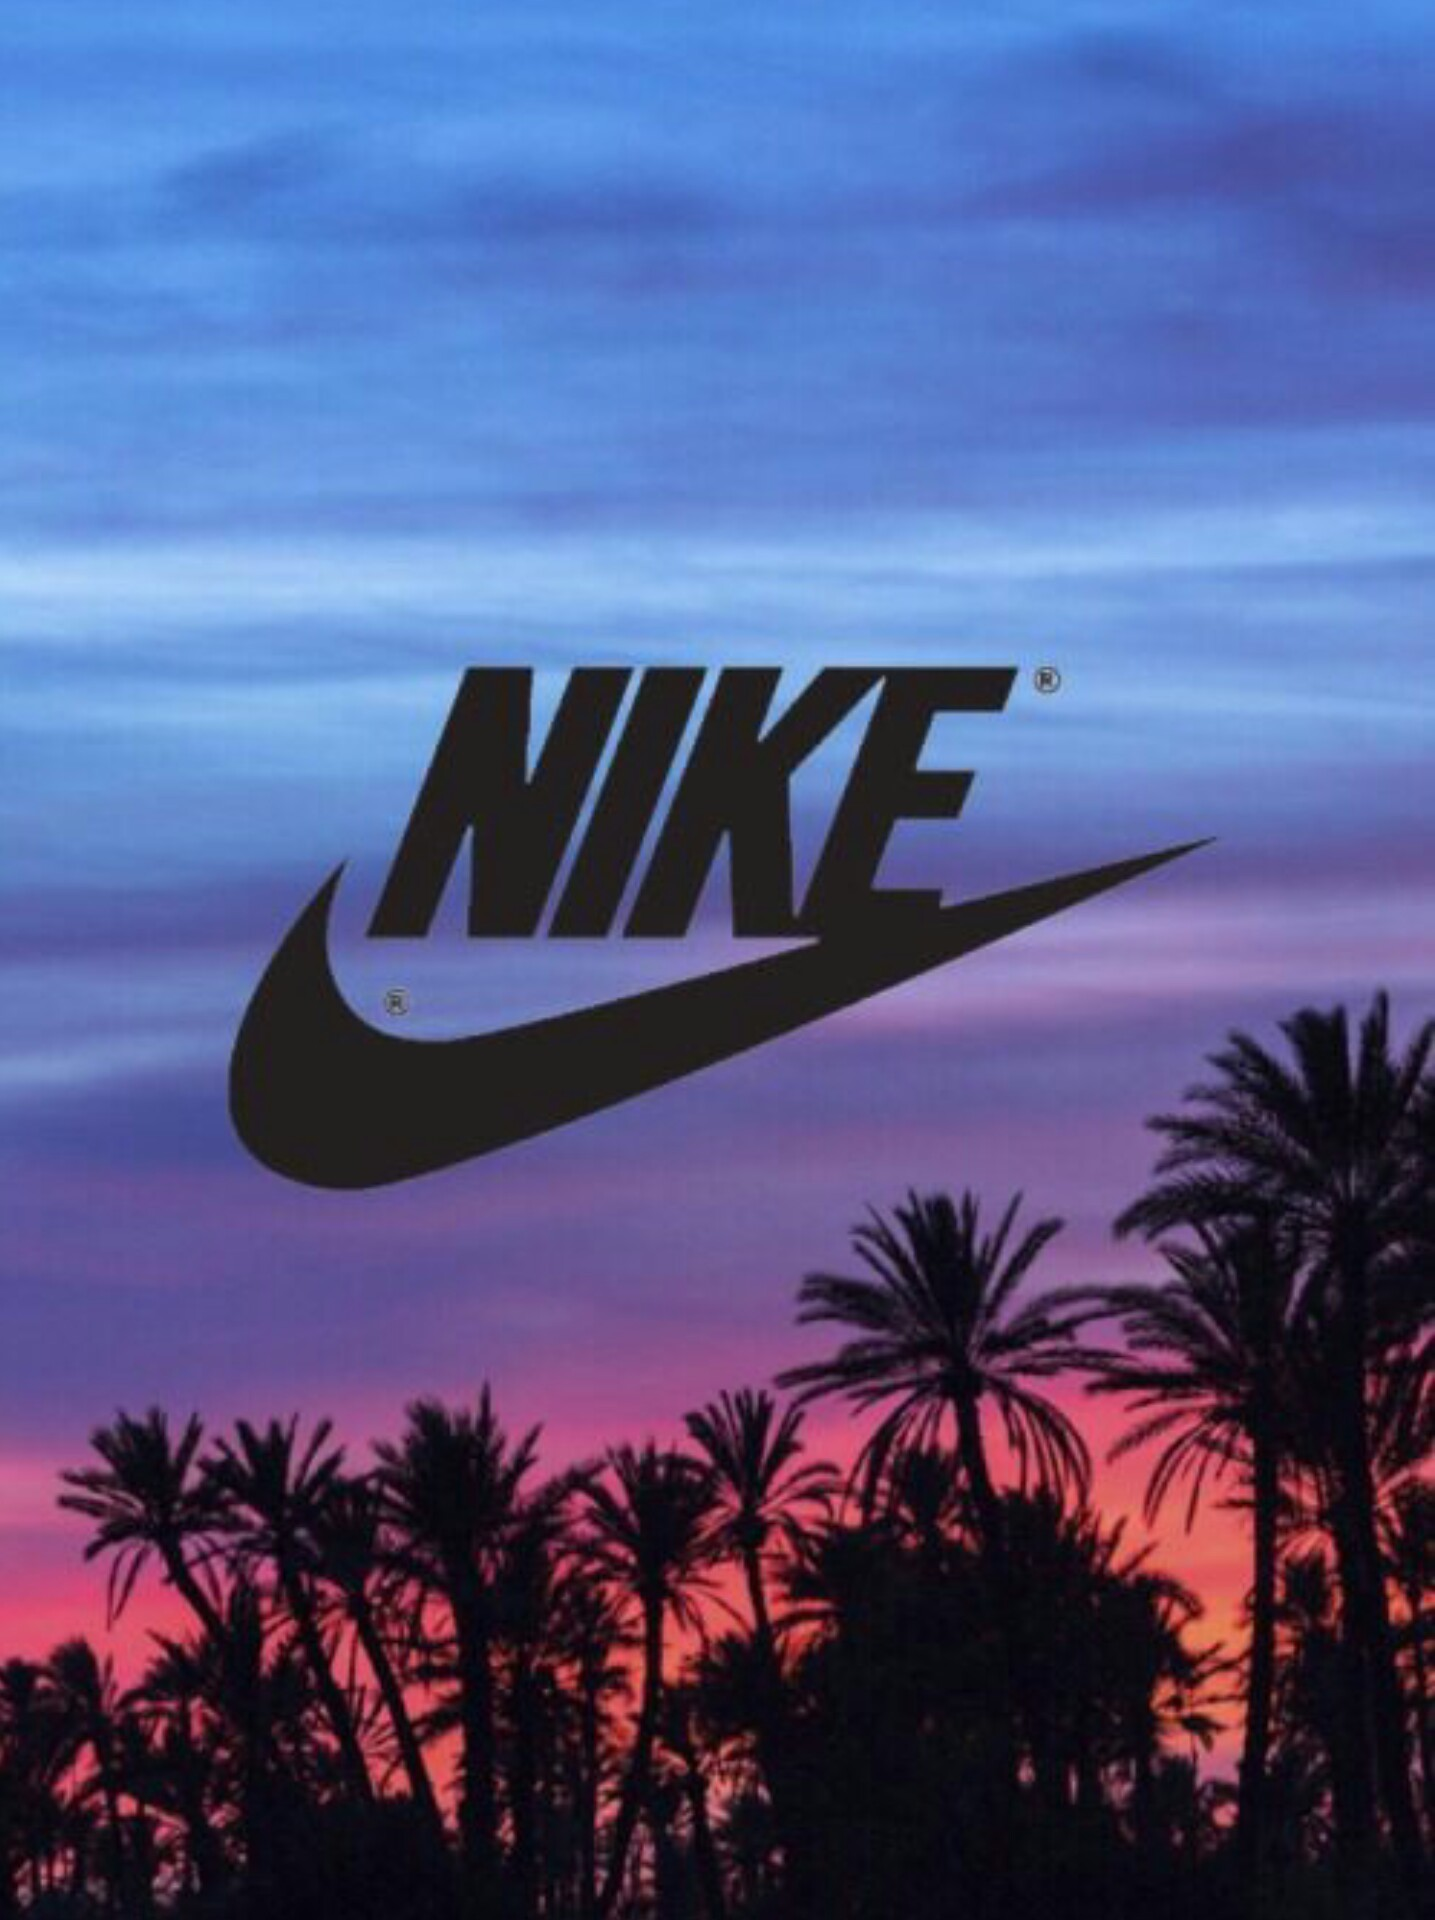 Nike Wallpaper, Most Beautiful Images, Image Search